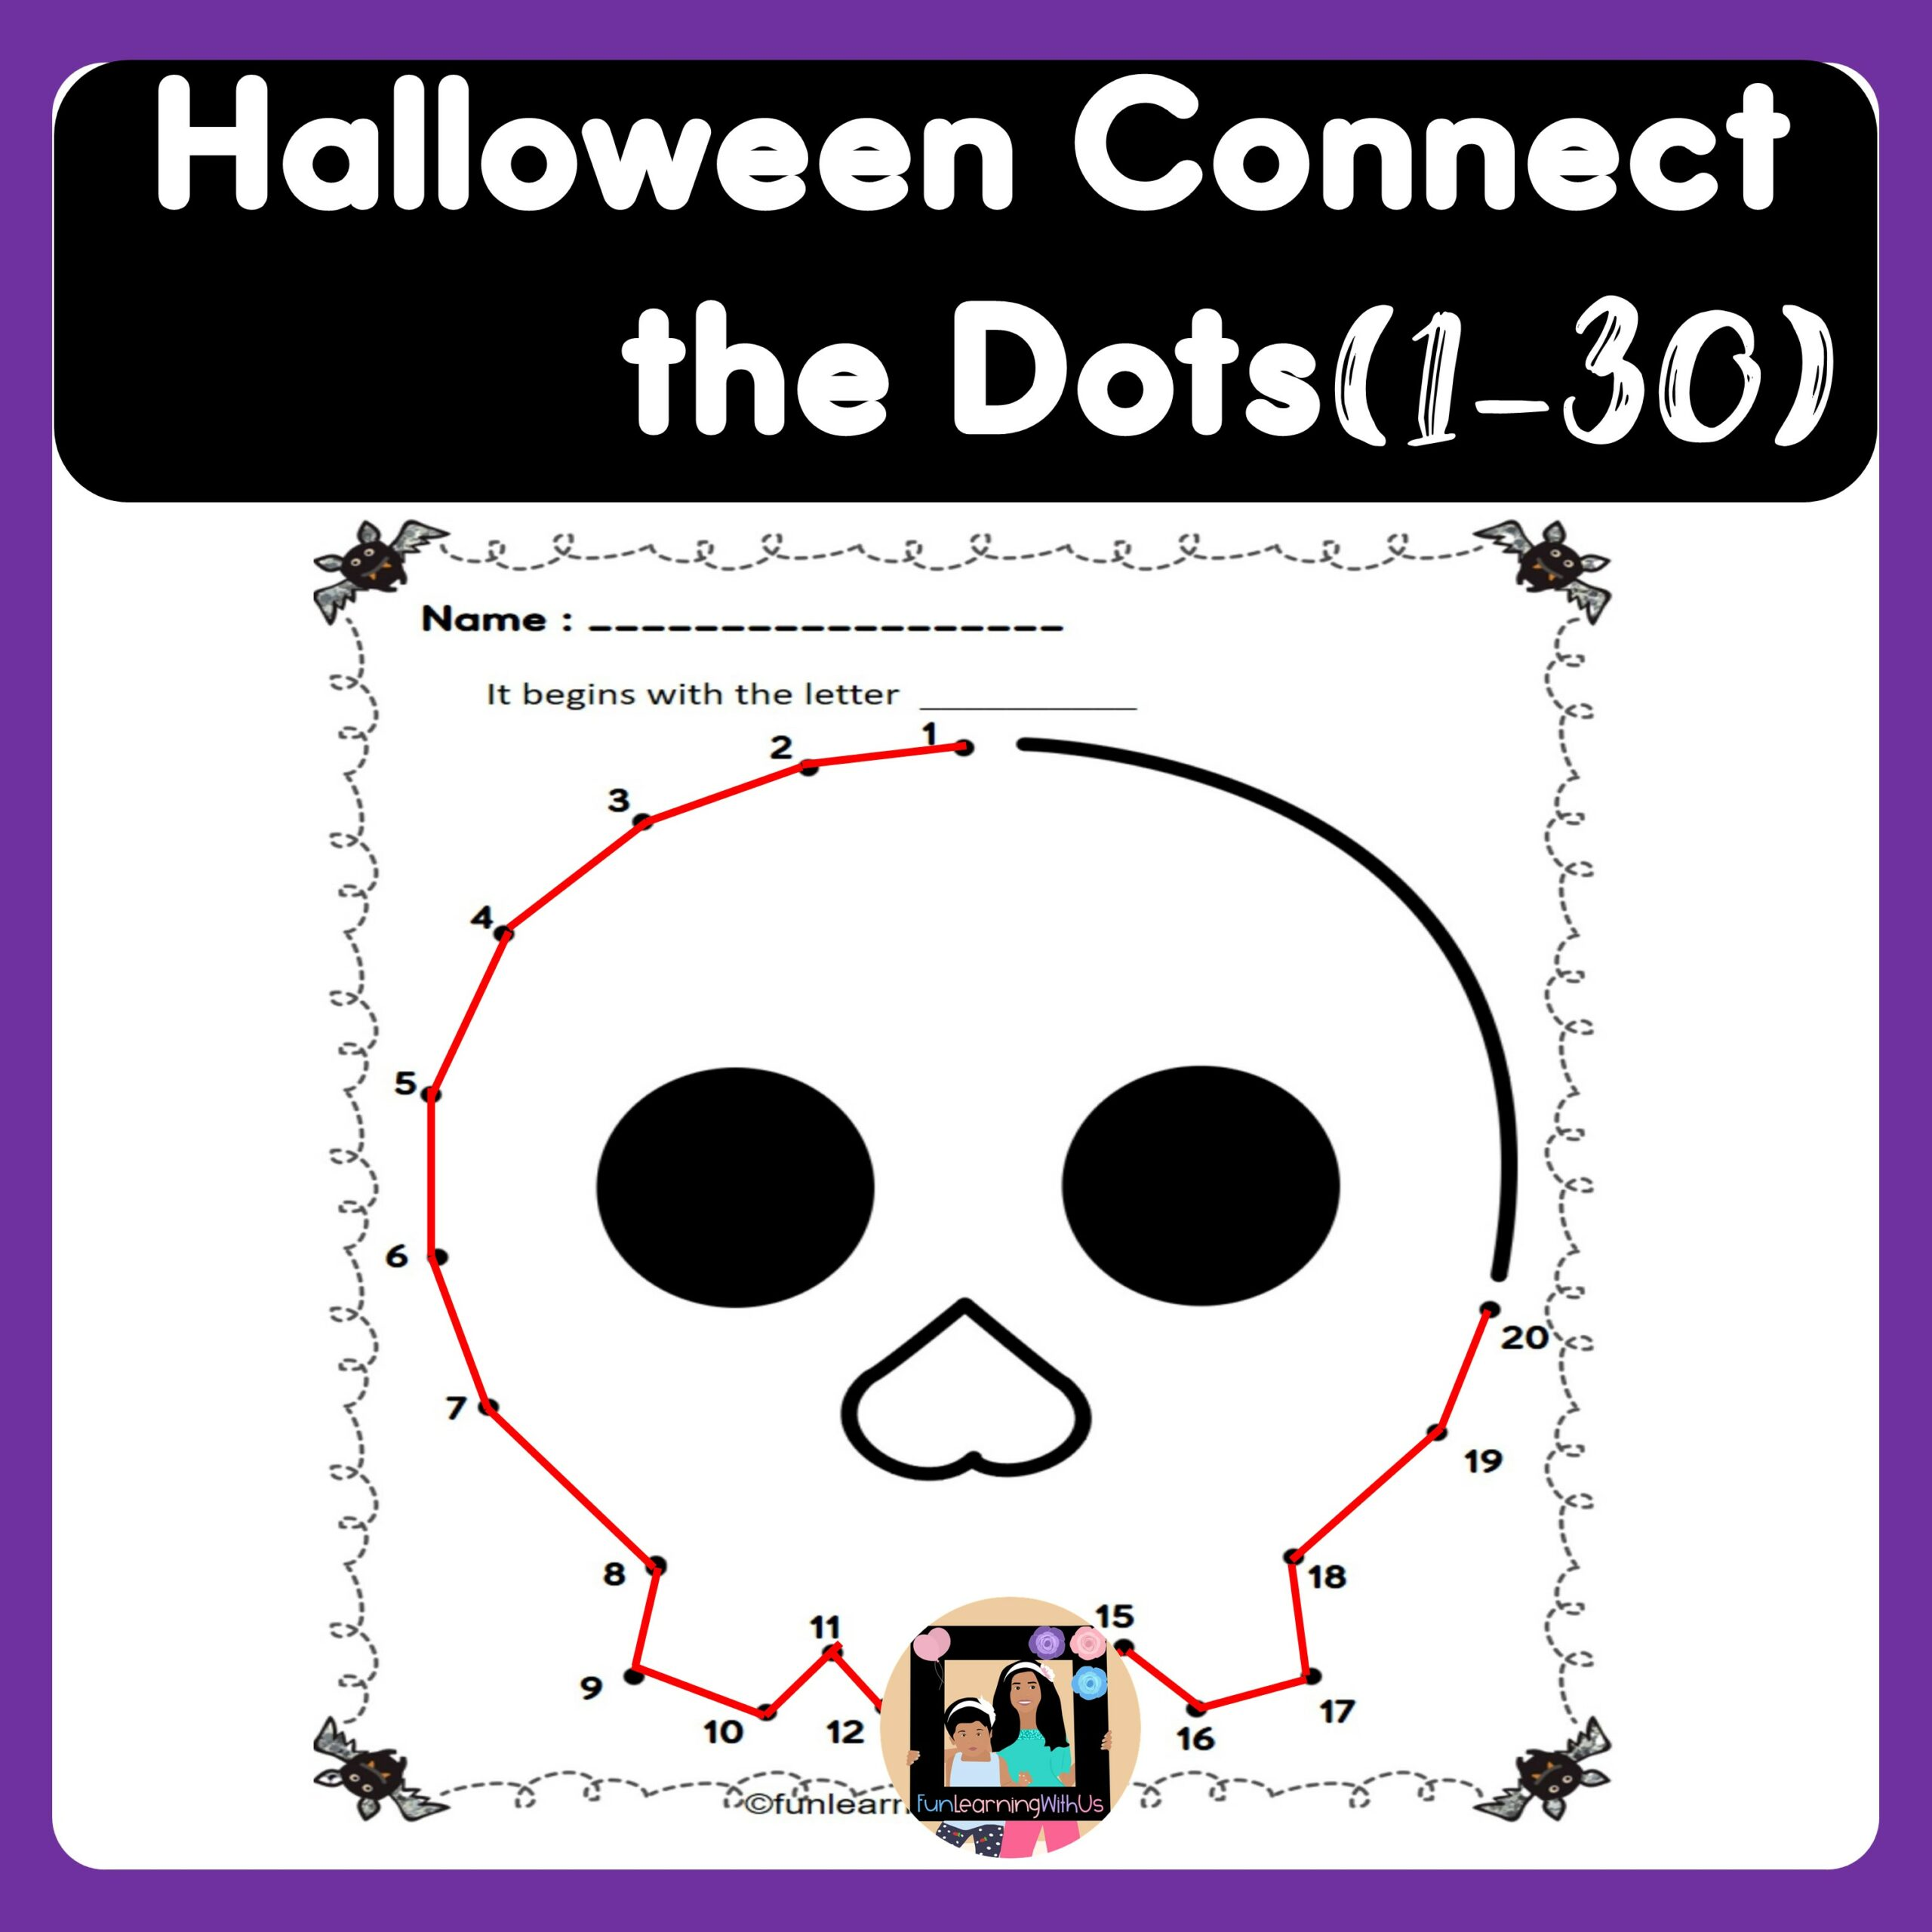 Halloween Connect the Dots  Dot to Dot worksheets